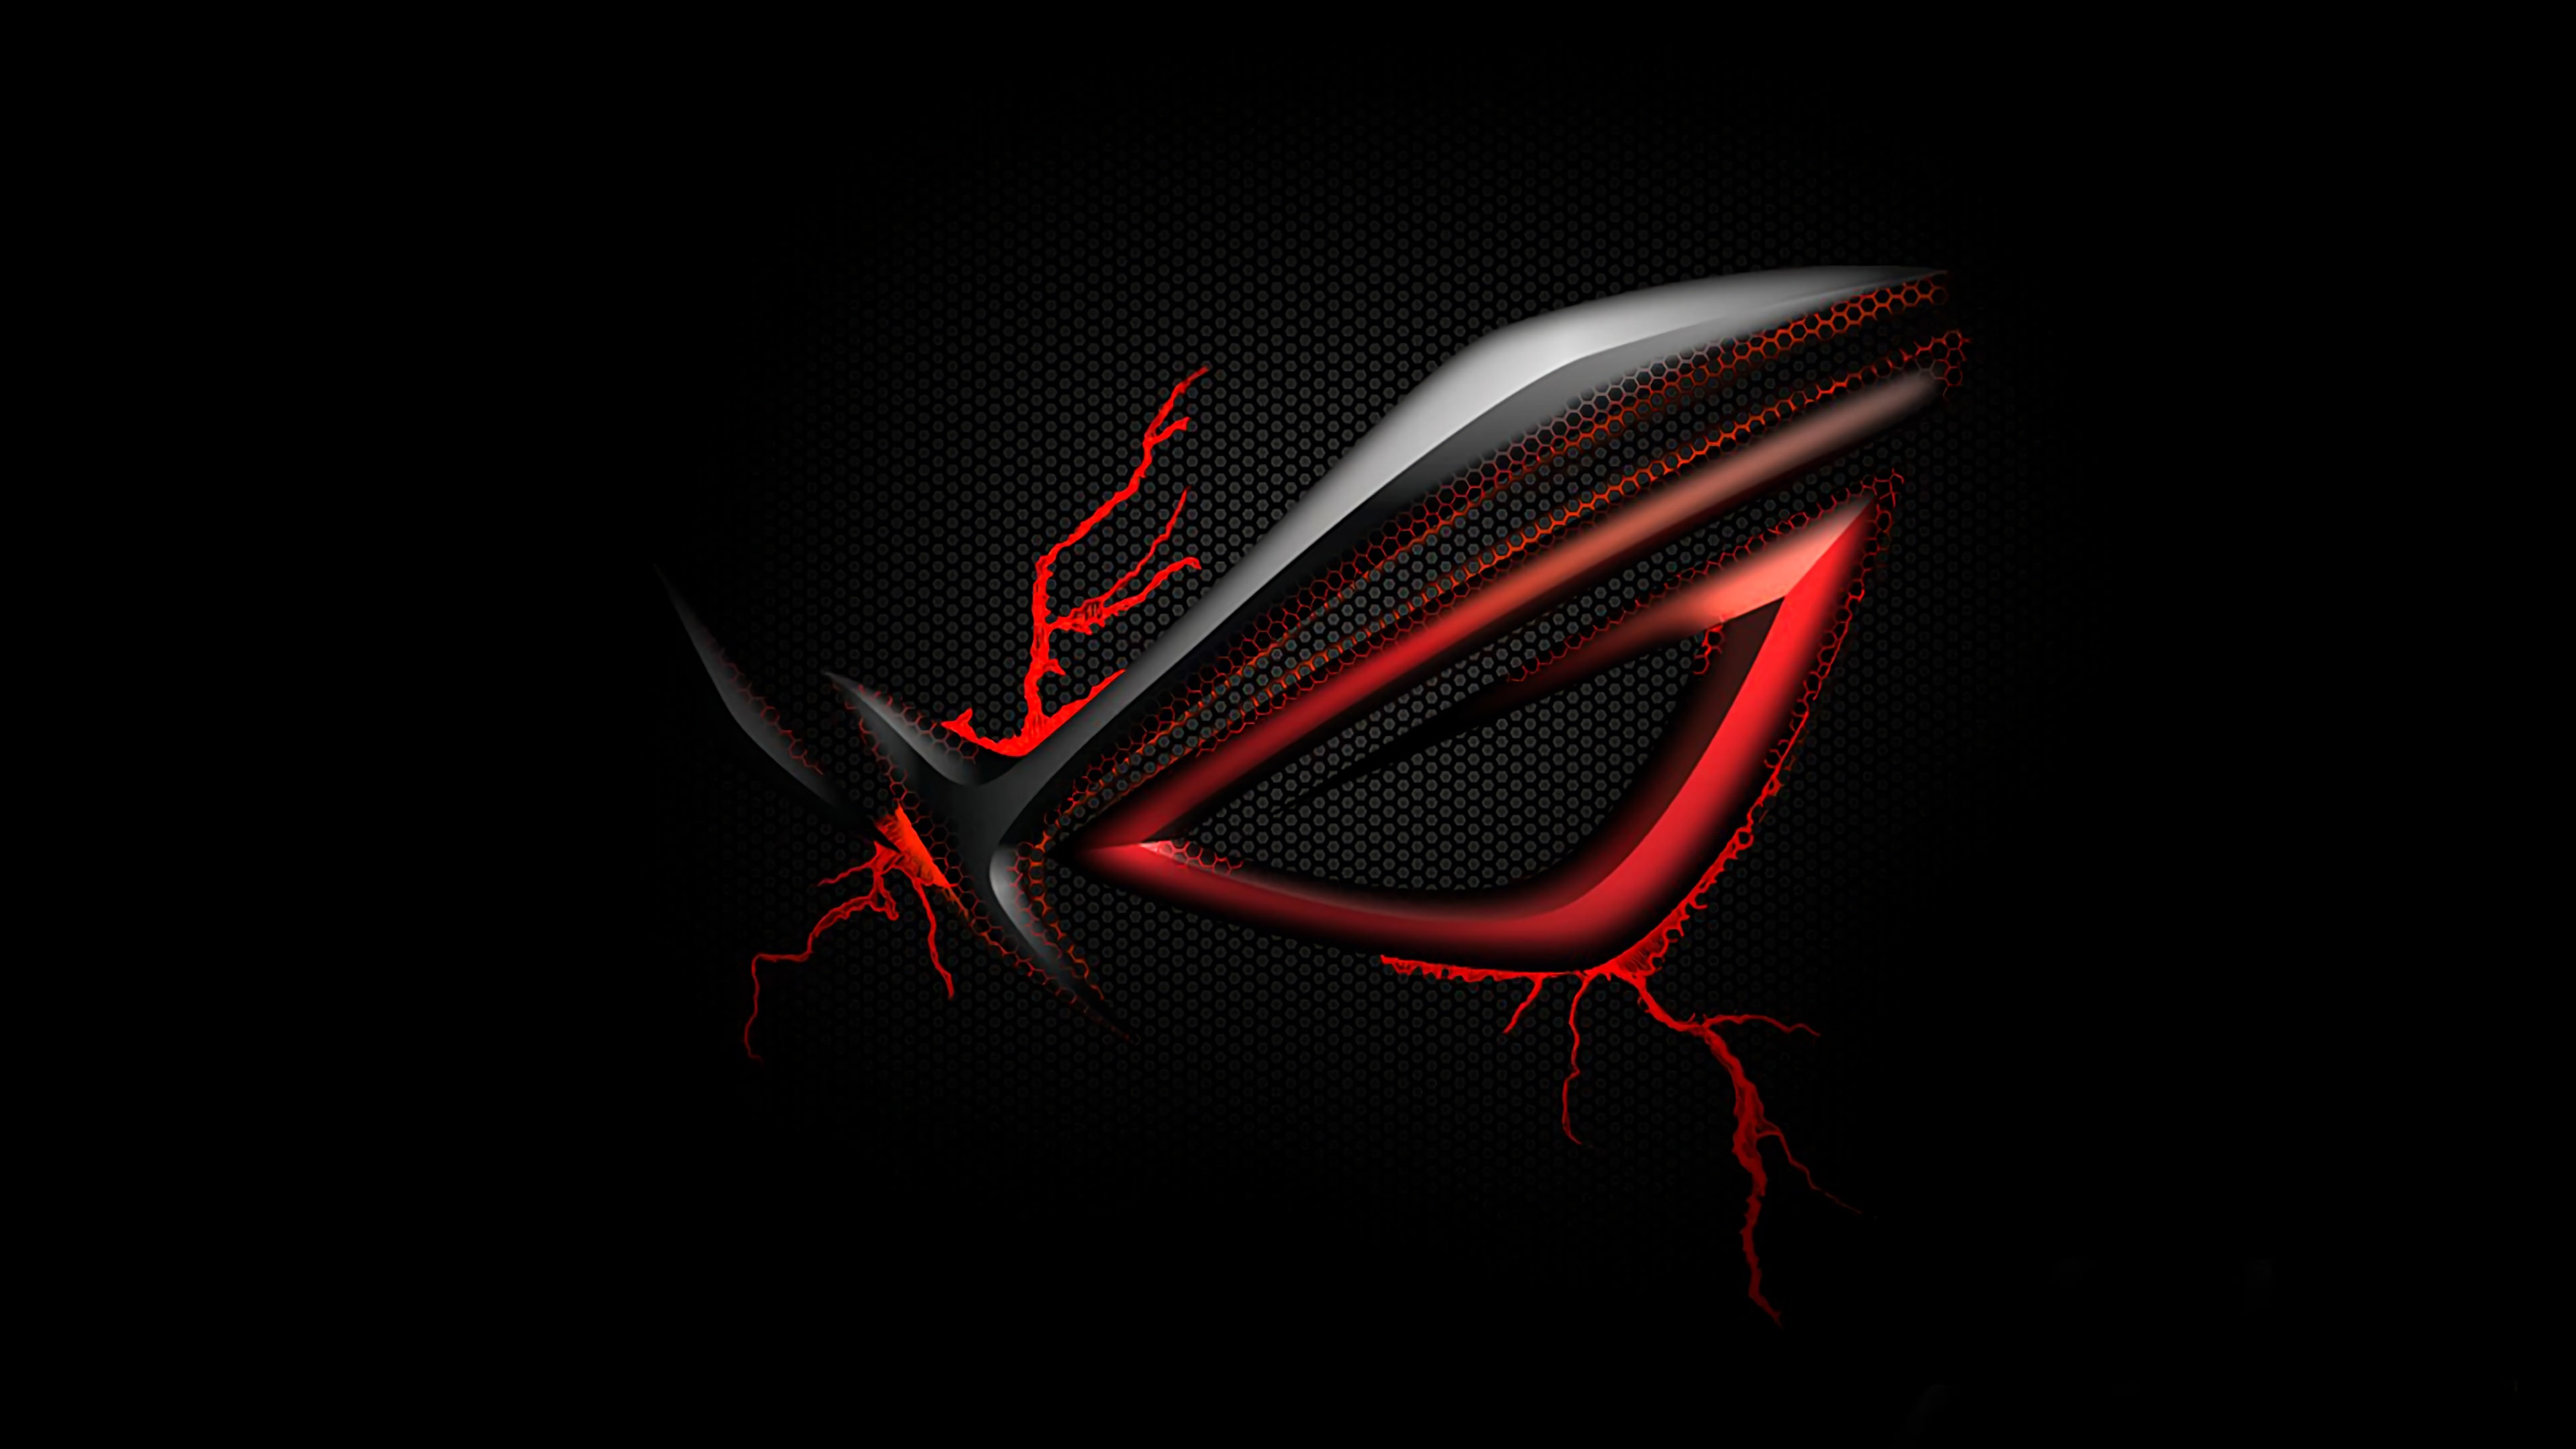 Rog 4k Wallpapers Top Free Rog 4k Backgrounds Wallpaperaccess